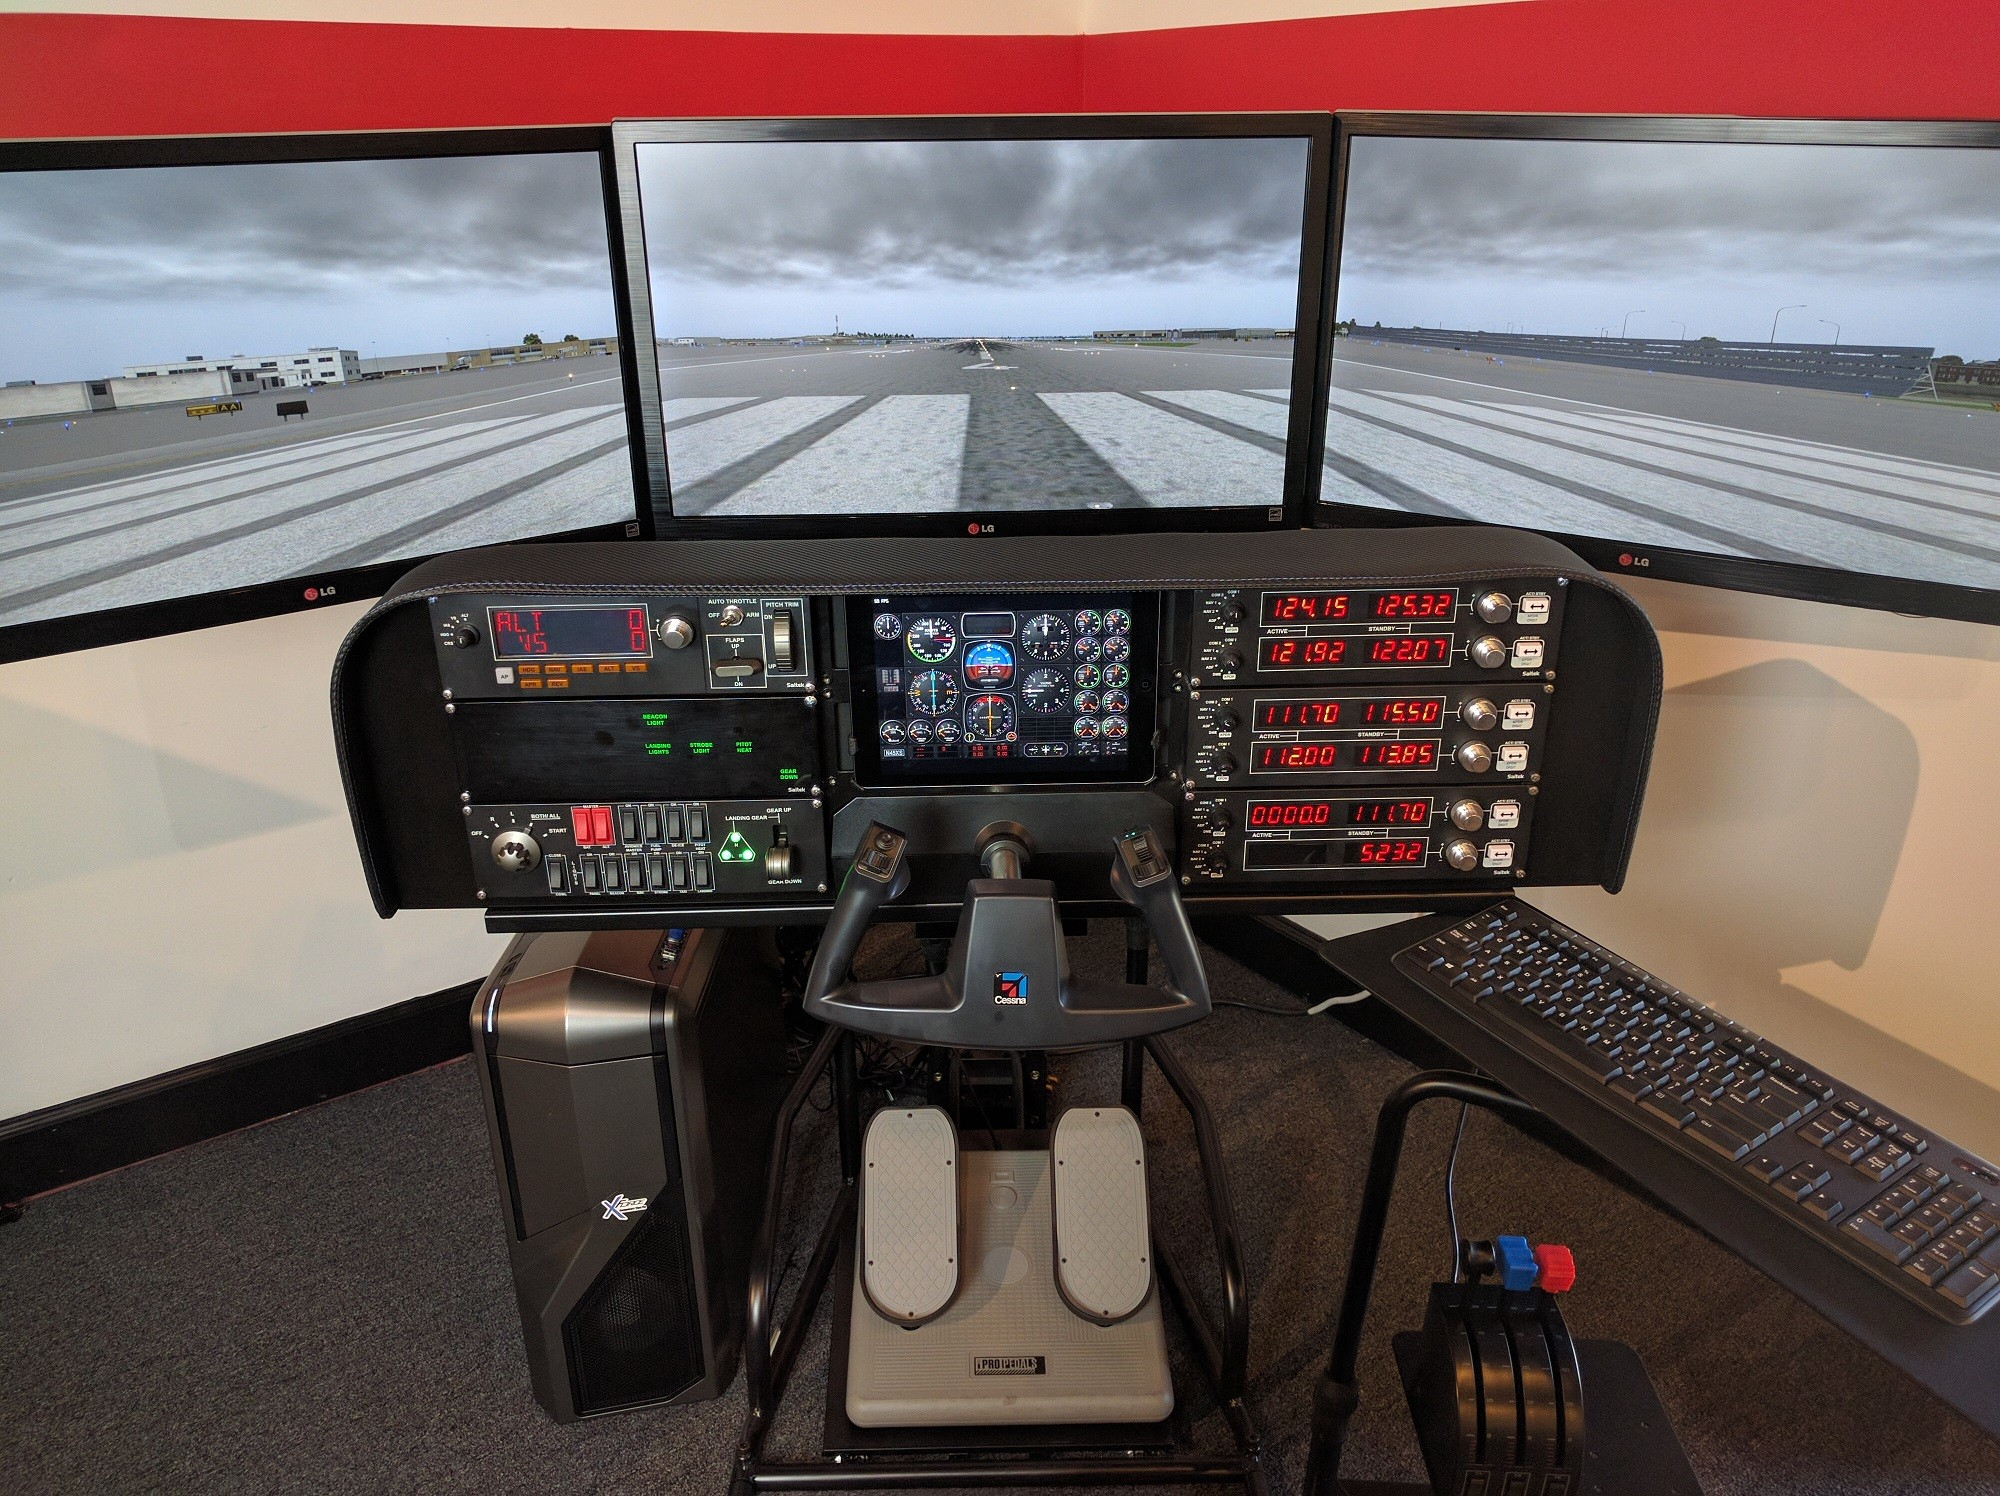 Malaysian pilot flight simulator - how much would it cost ? - Page 1